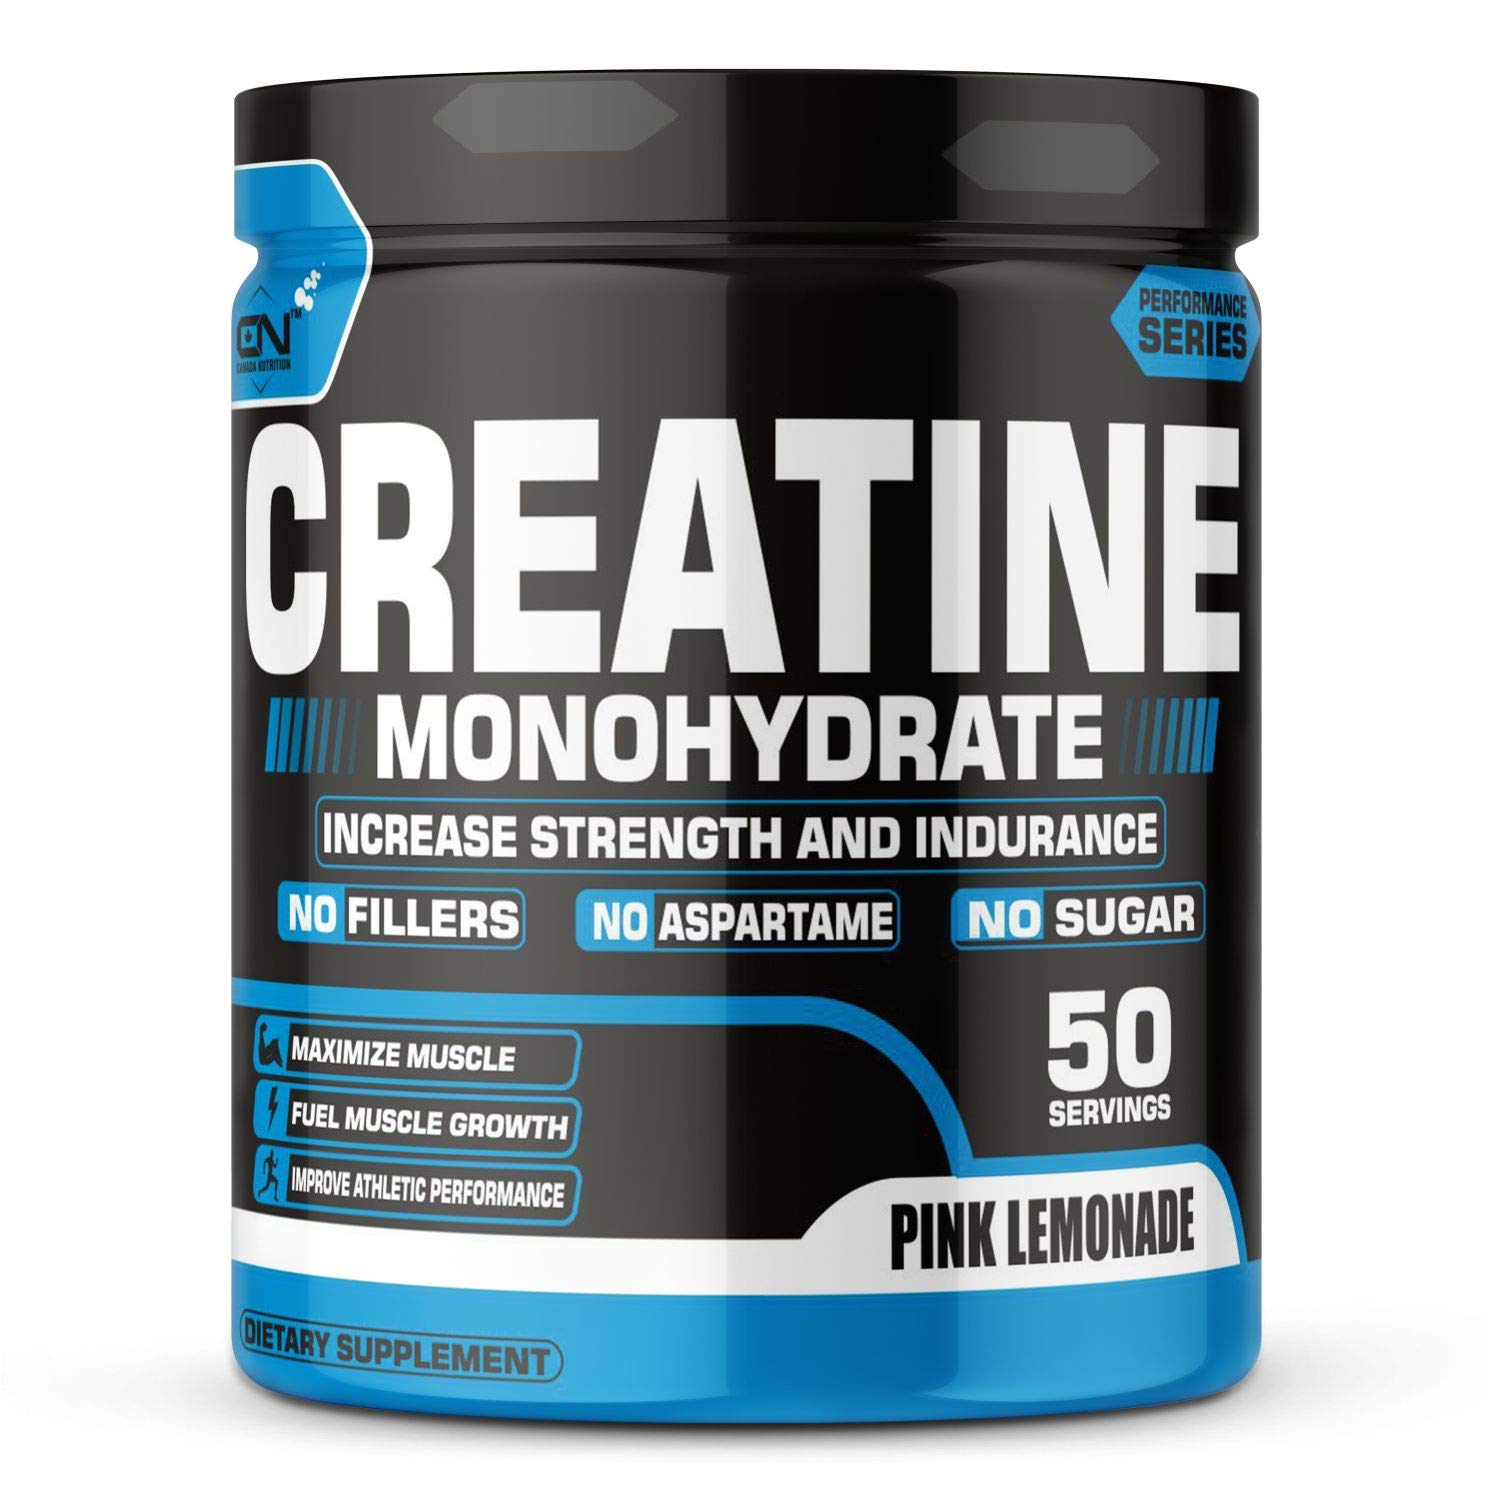 The Benefits And Side Effects Of Creatine